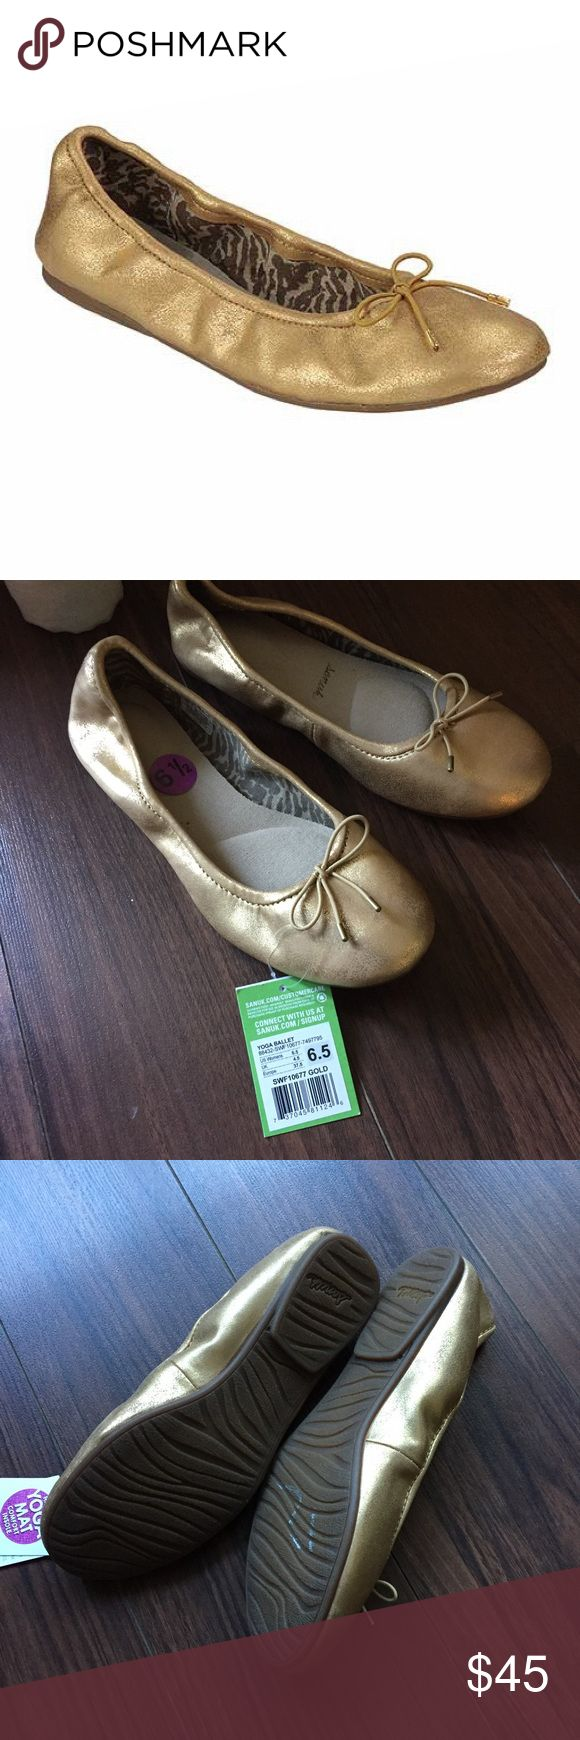 Gold Ballet Flats The Sanuk Ballet Shoe is the ultimate in relaxed comfort. This classic flat has all of the elements of your favorite ballet shoe paired with Sanuk's new yoga pod footbed to give you support and comfort while you walk. A soft, printed canvas lining and ballet wood floor outsole add charm while the metallic colors give them a touch of glam. Fun, metallic colors Yoga pod footbed Wood ballet floor outsole 100% Synthetic Sanuk Shoes Flats & Loafers